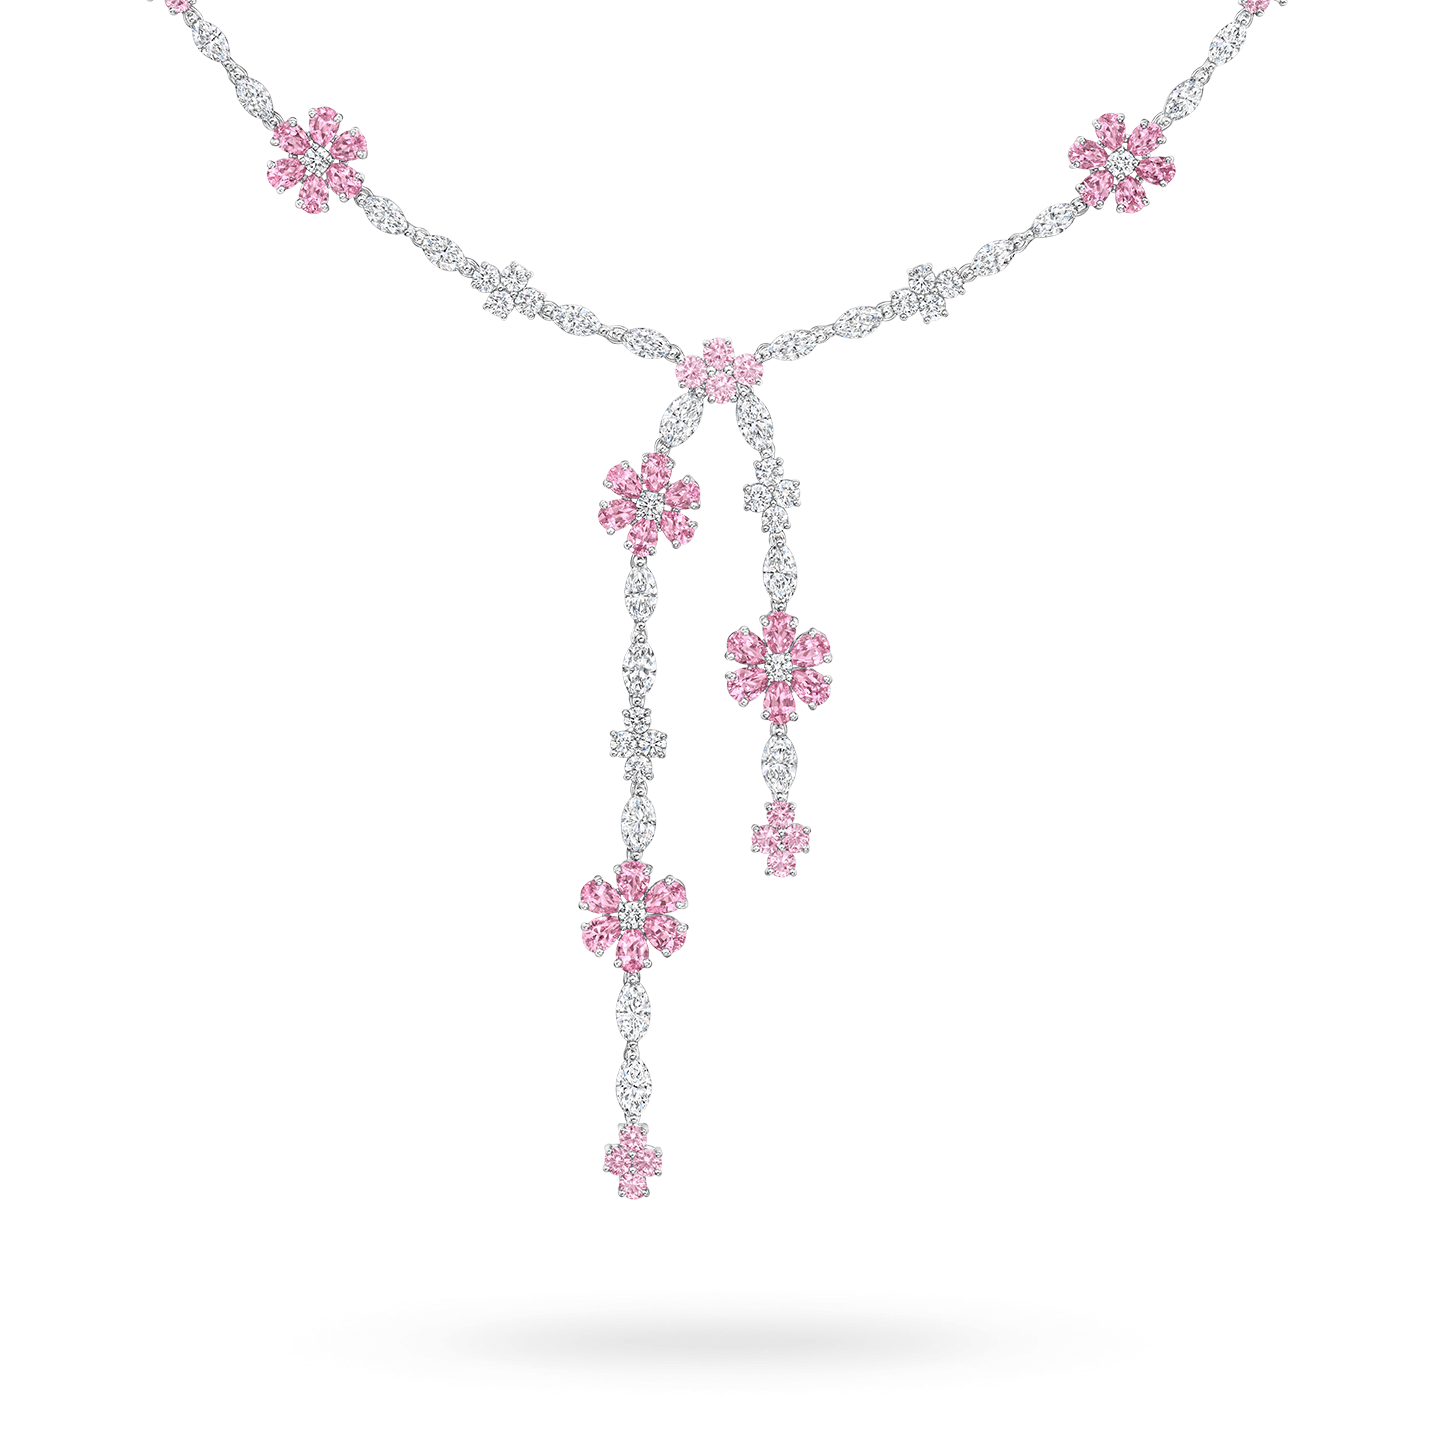 Forget-Me-Not Lariat Pink Sapphire and Diamond Necklace, Product Image 2